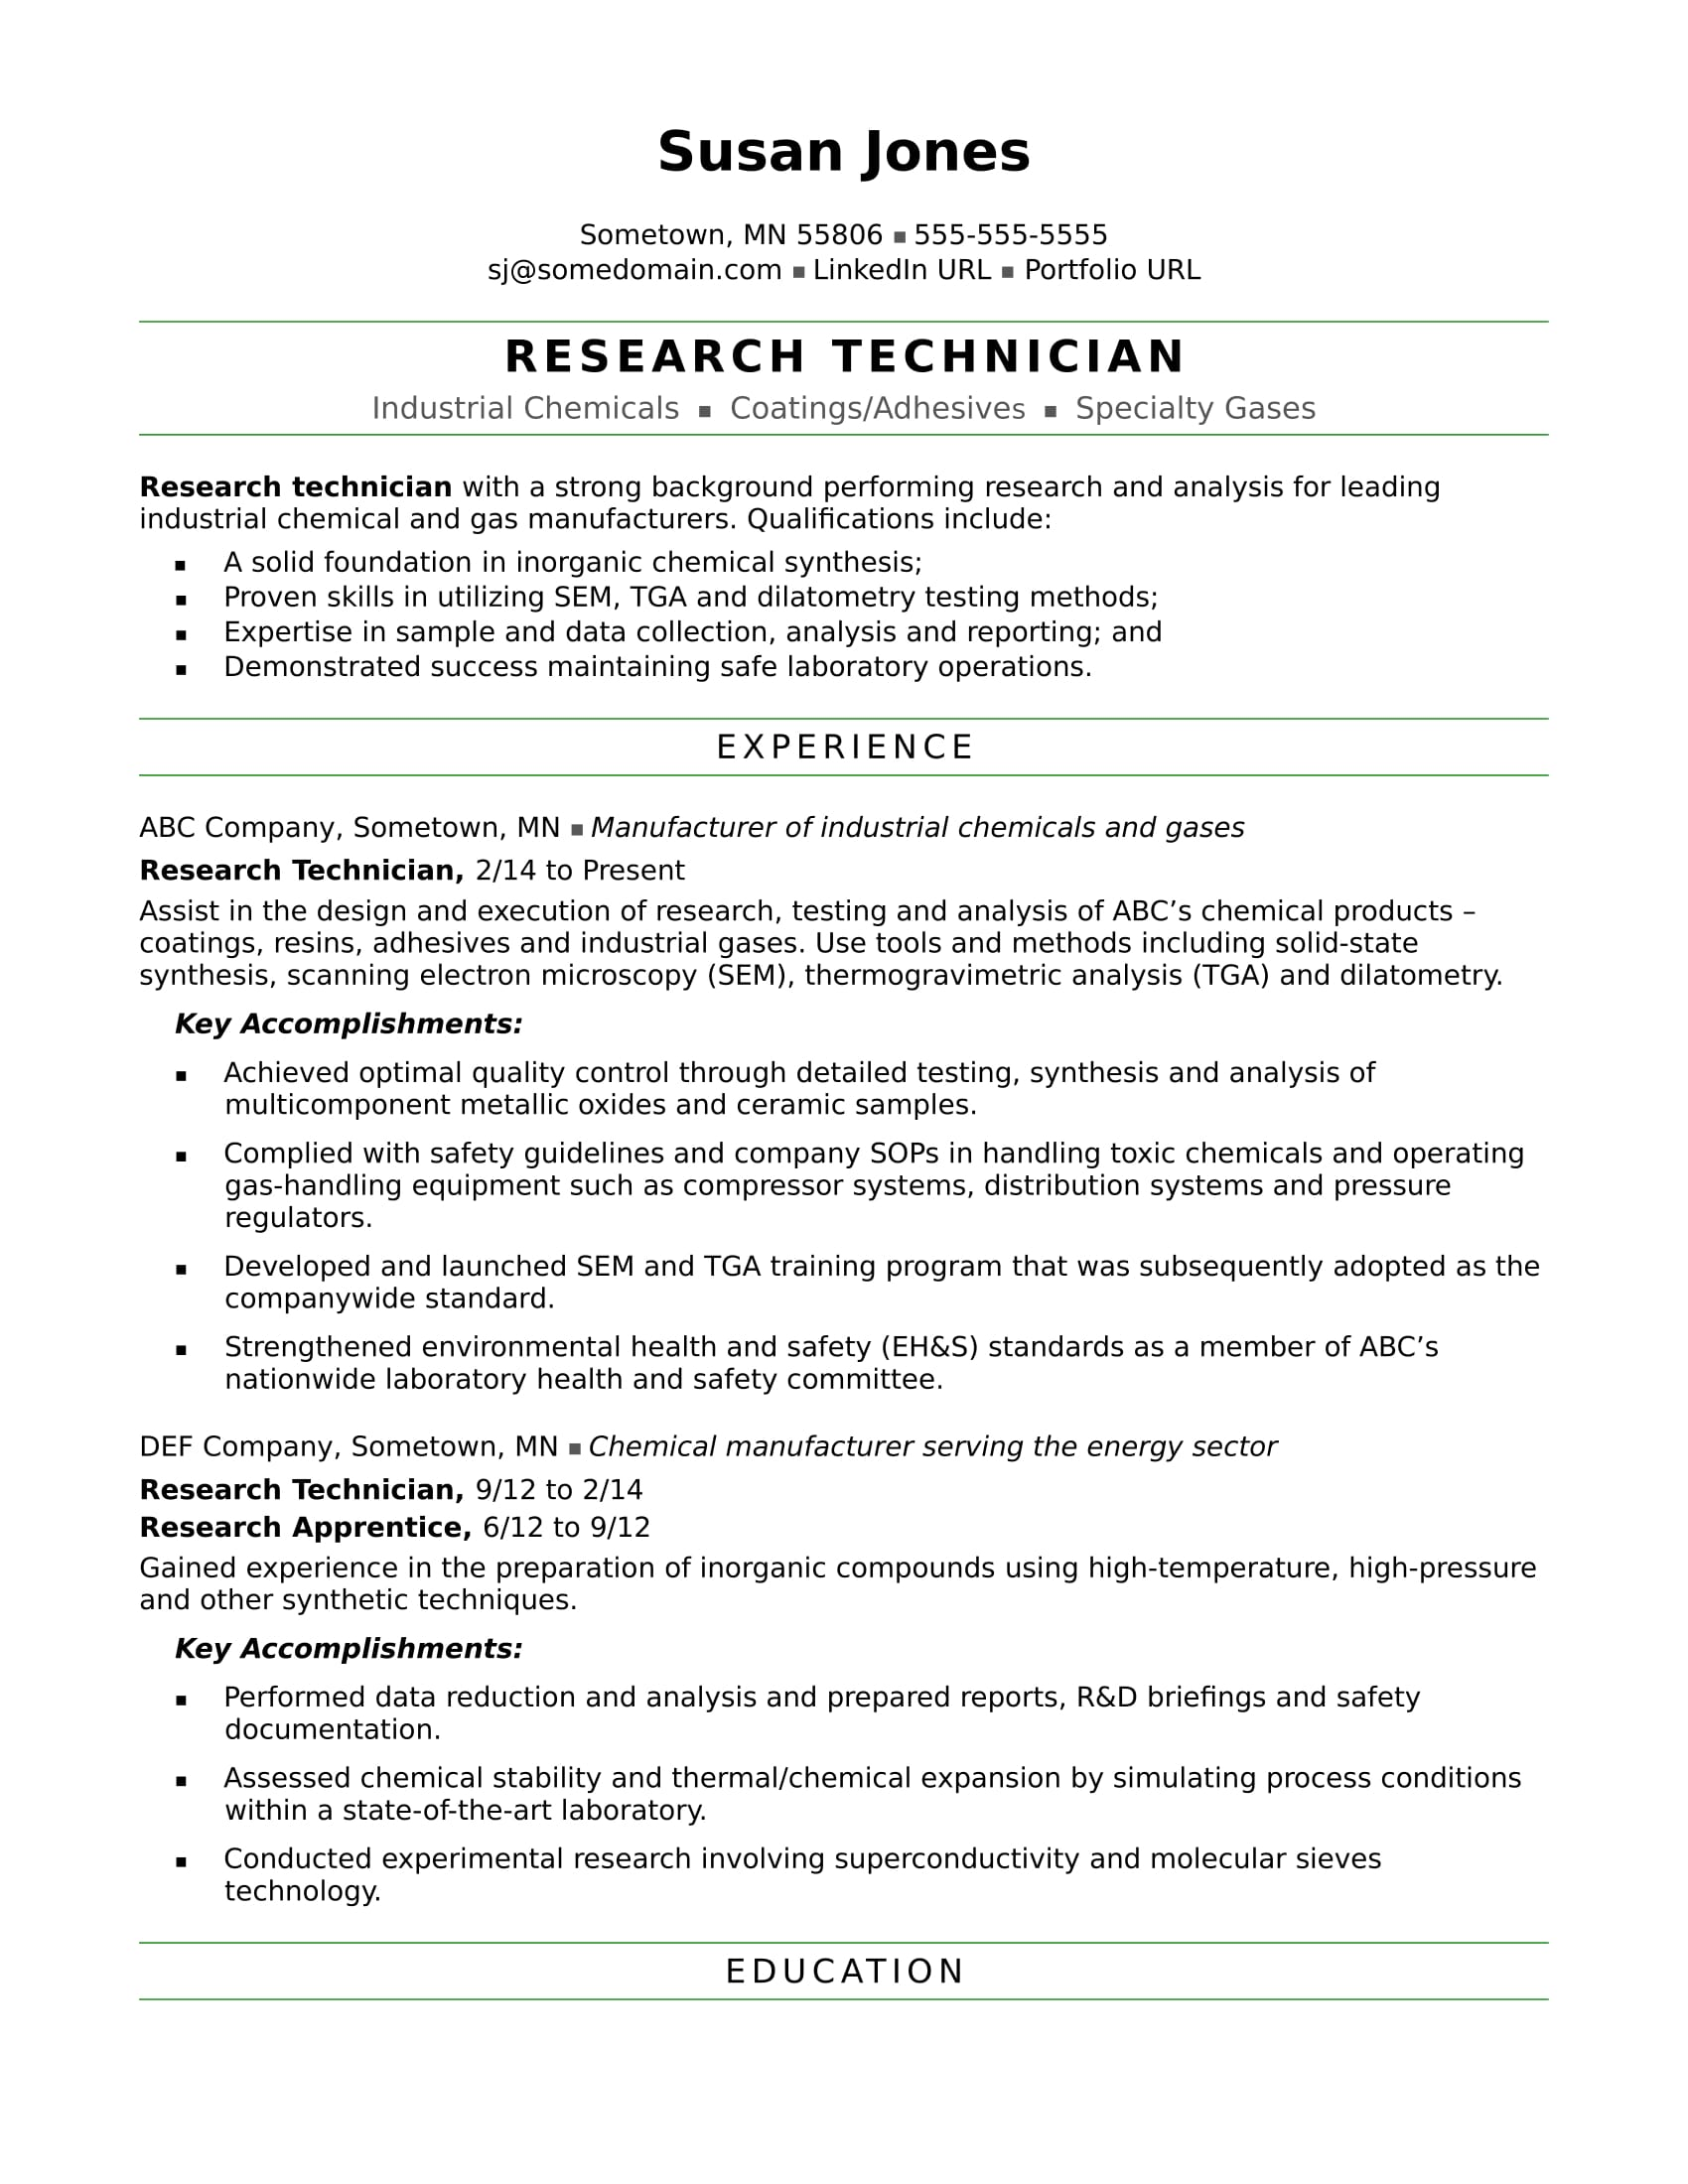 Sample resume for a research technician